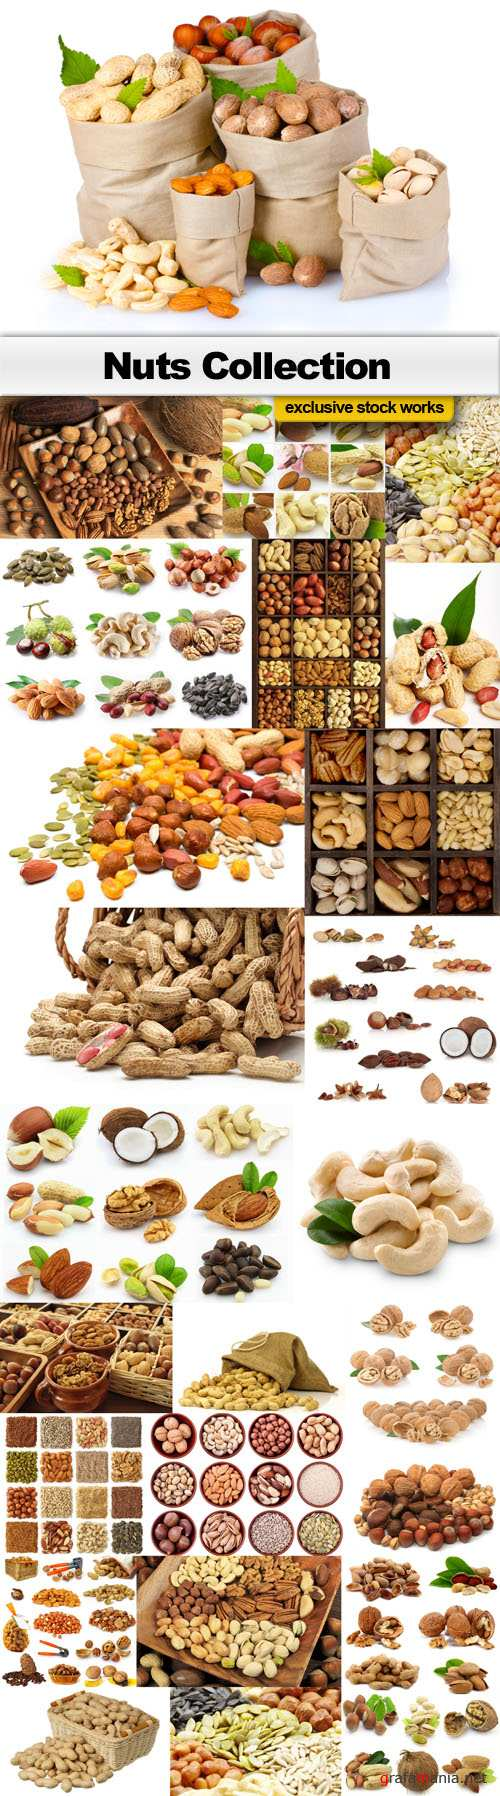 Nuts Collection - 25 JPEG